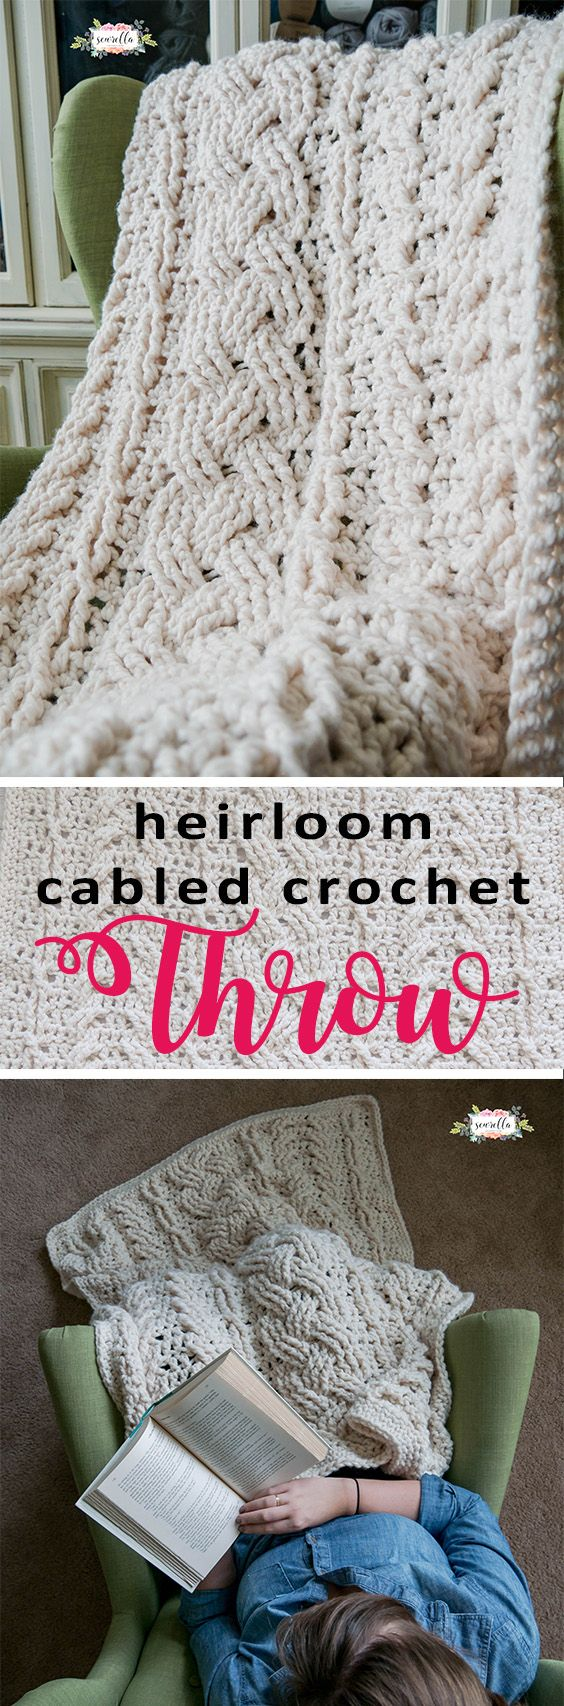 Crochet this cabled throw afghan blanket with a stitch by stitch video tutorial and FREE crochet pattern!